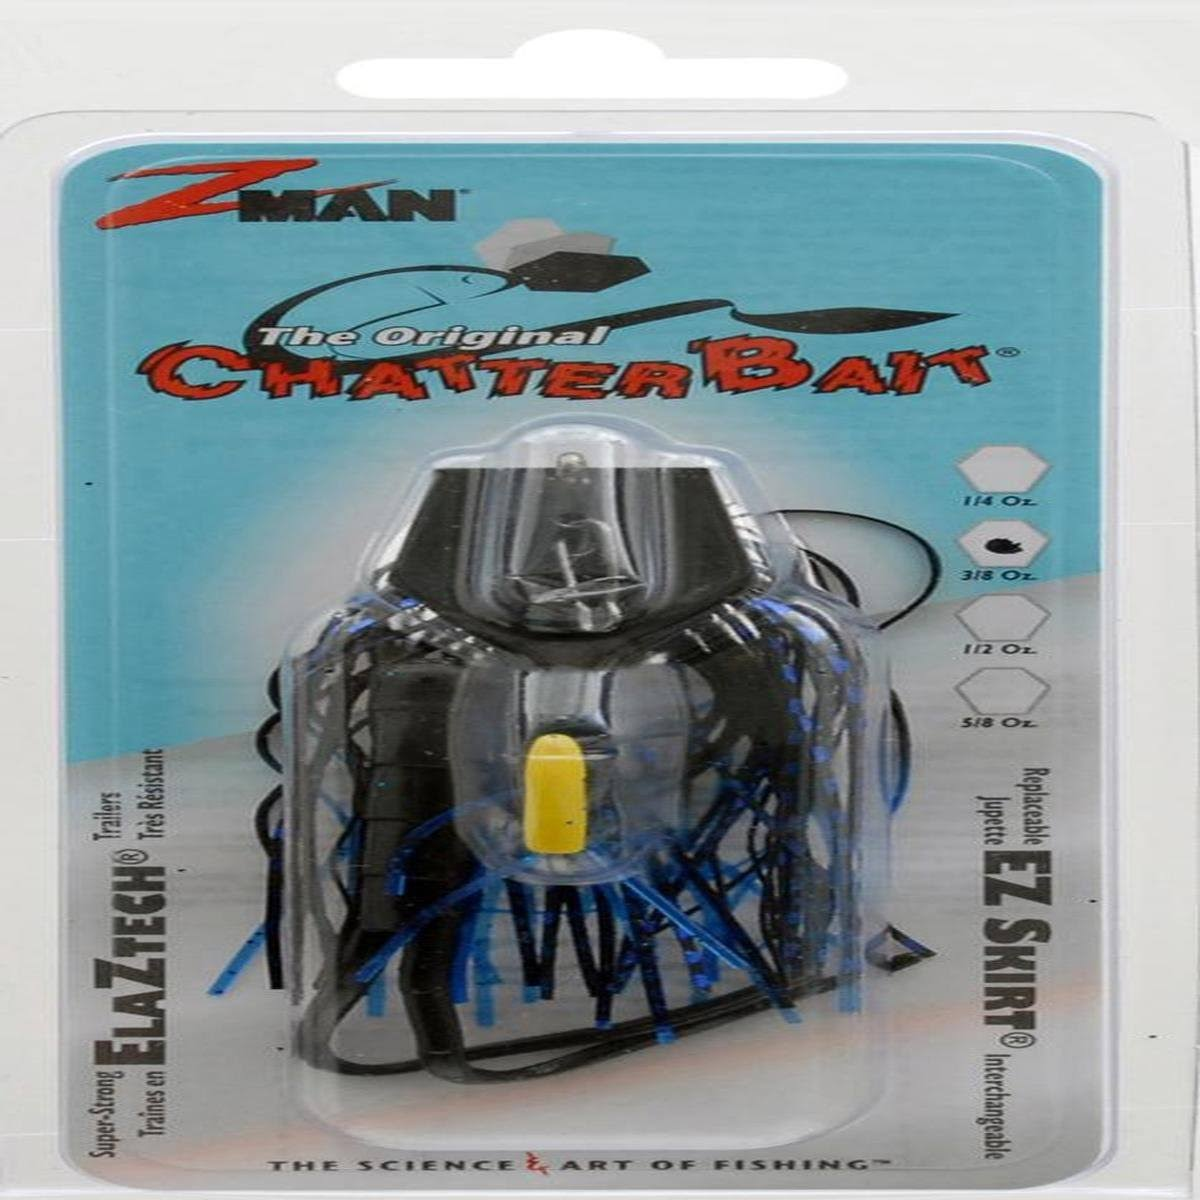 Z-Man Original Chatterbait 3/8 oz. Black Blue Nickel